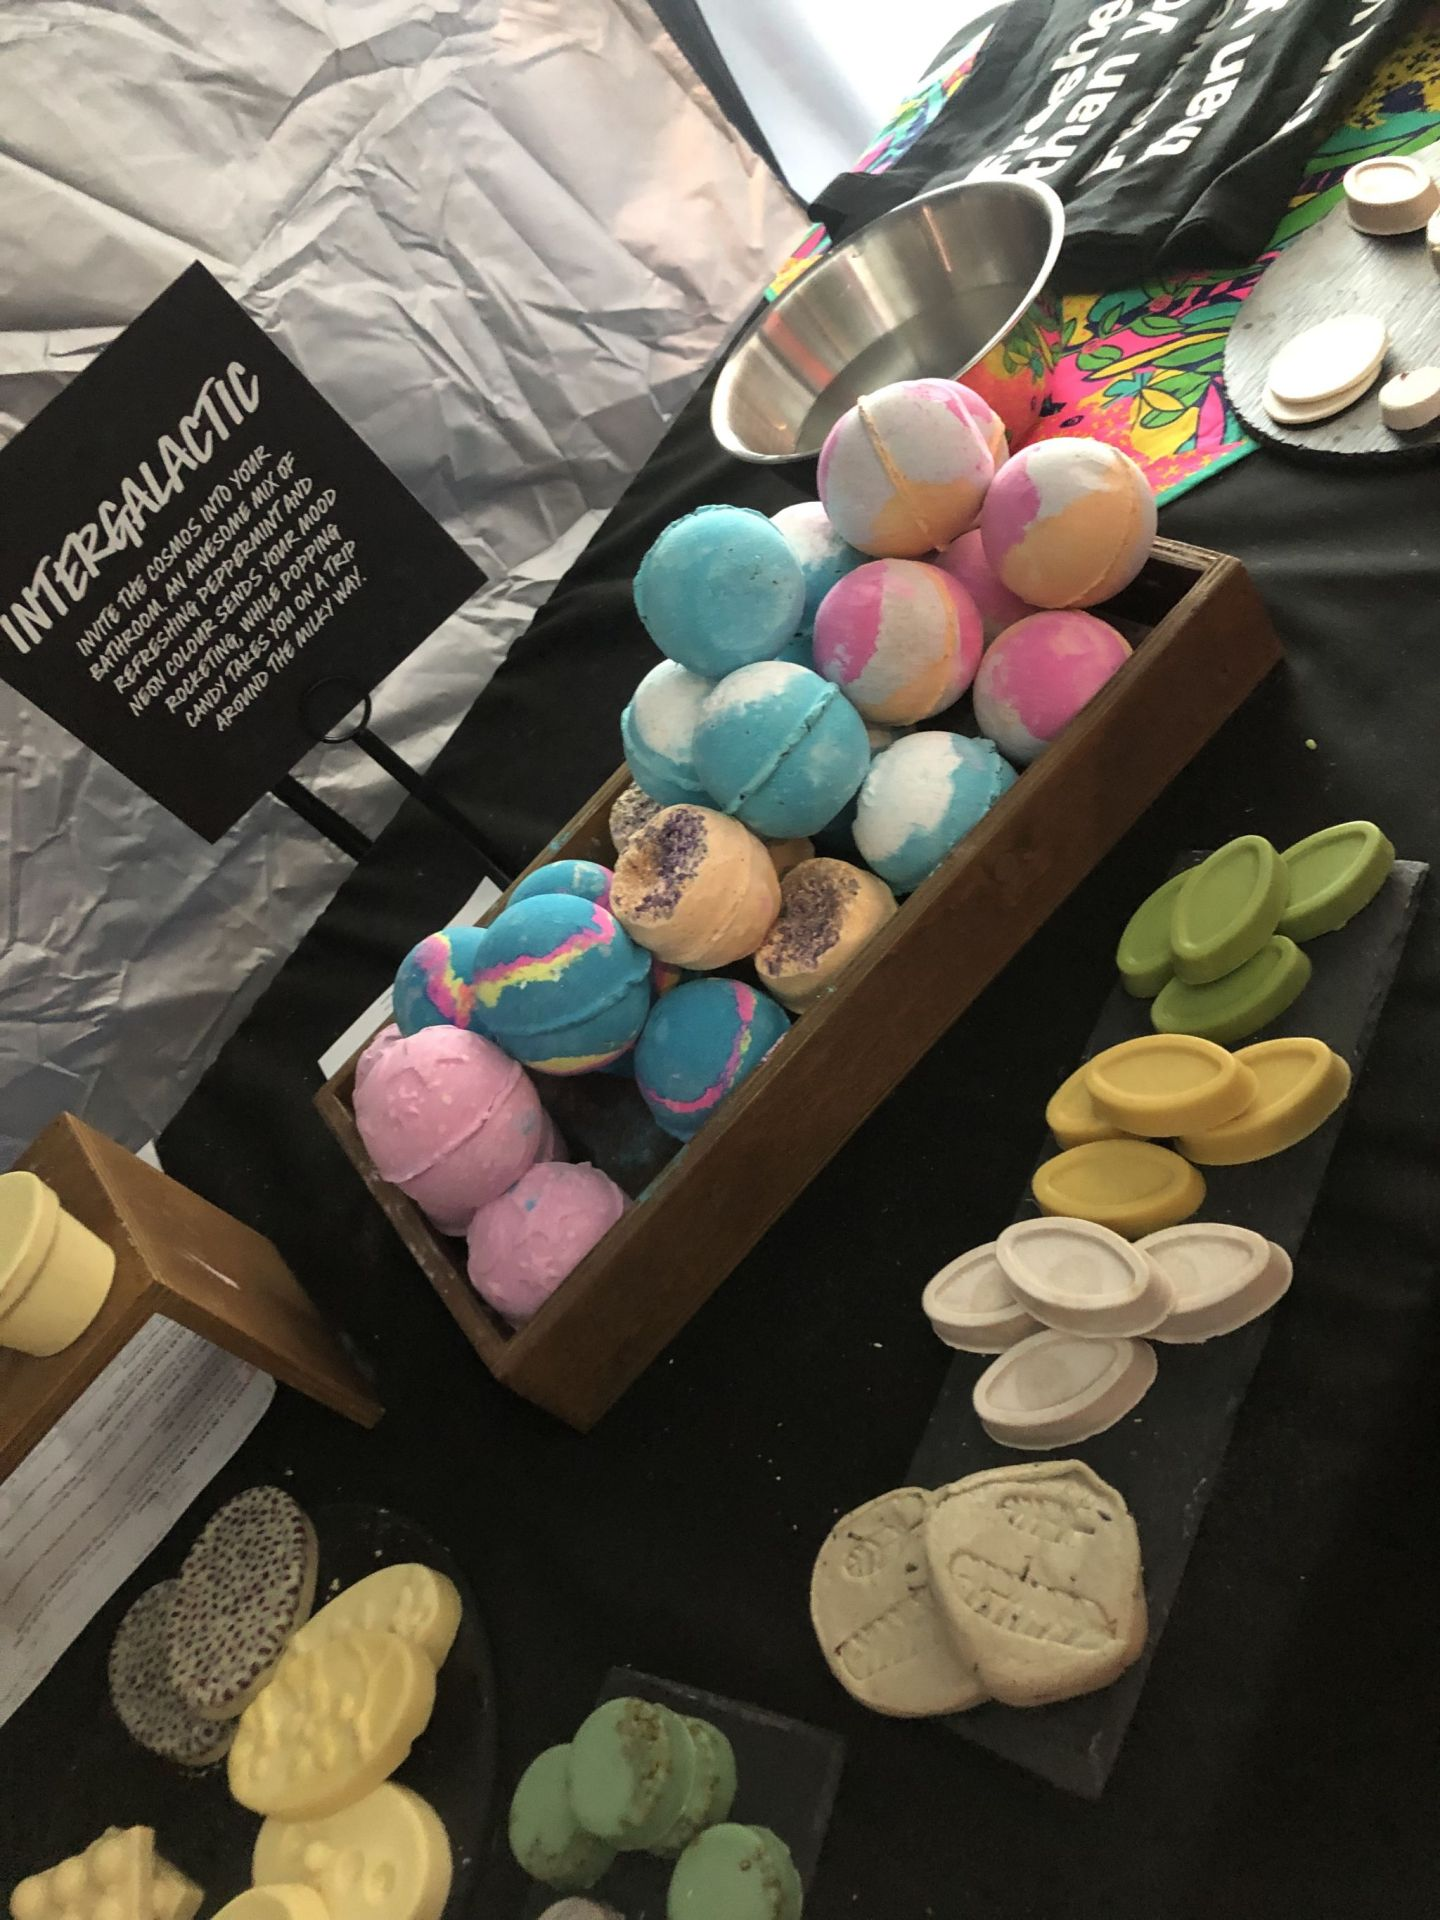 LUSH stand at BlogOn conference. Variety of bath bombs, cleansers, shampoos. LUSH cosmetics.